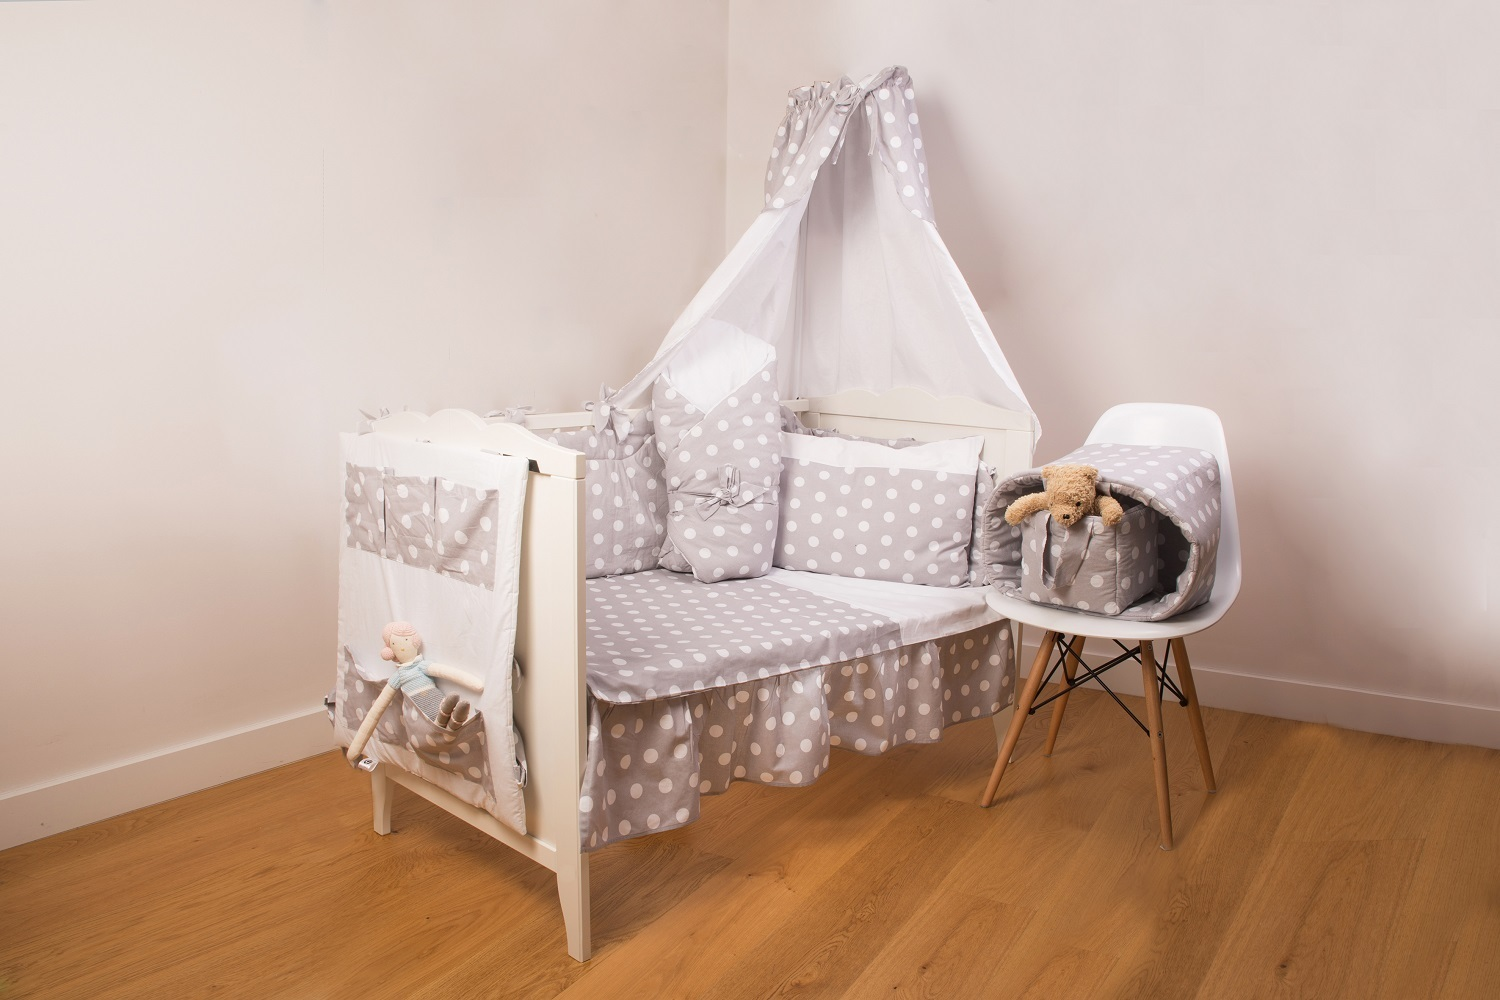 ... Canopy with holder for baby cot - Polka Dots Collection - White u0026 Grey - Vizaro ... & Canopy with holder for baby cot - Polka Dots Collection - Vizaro